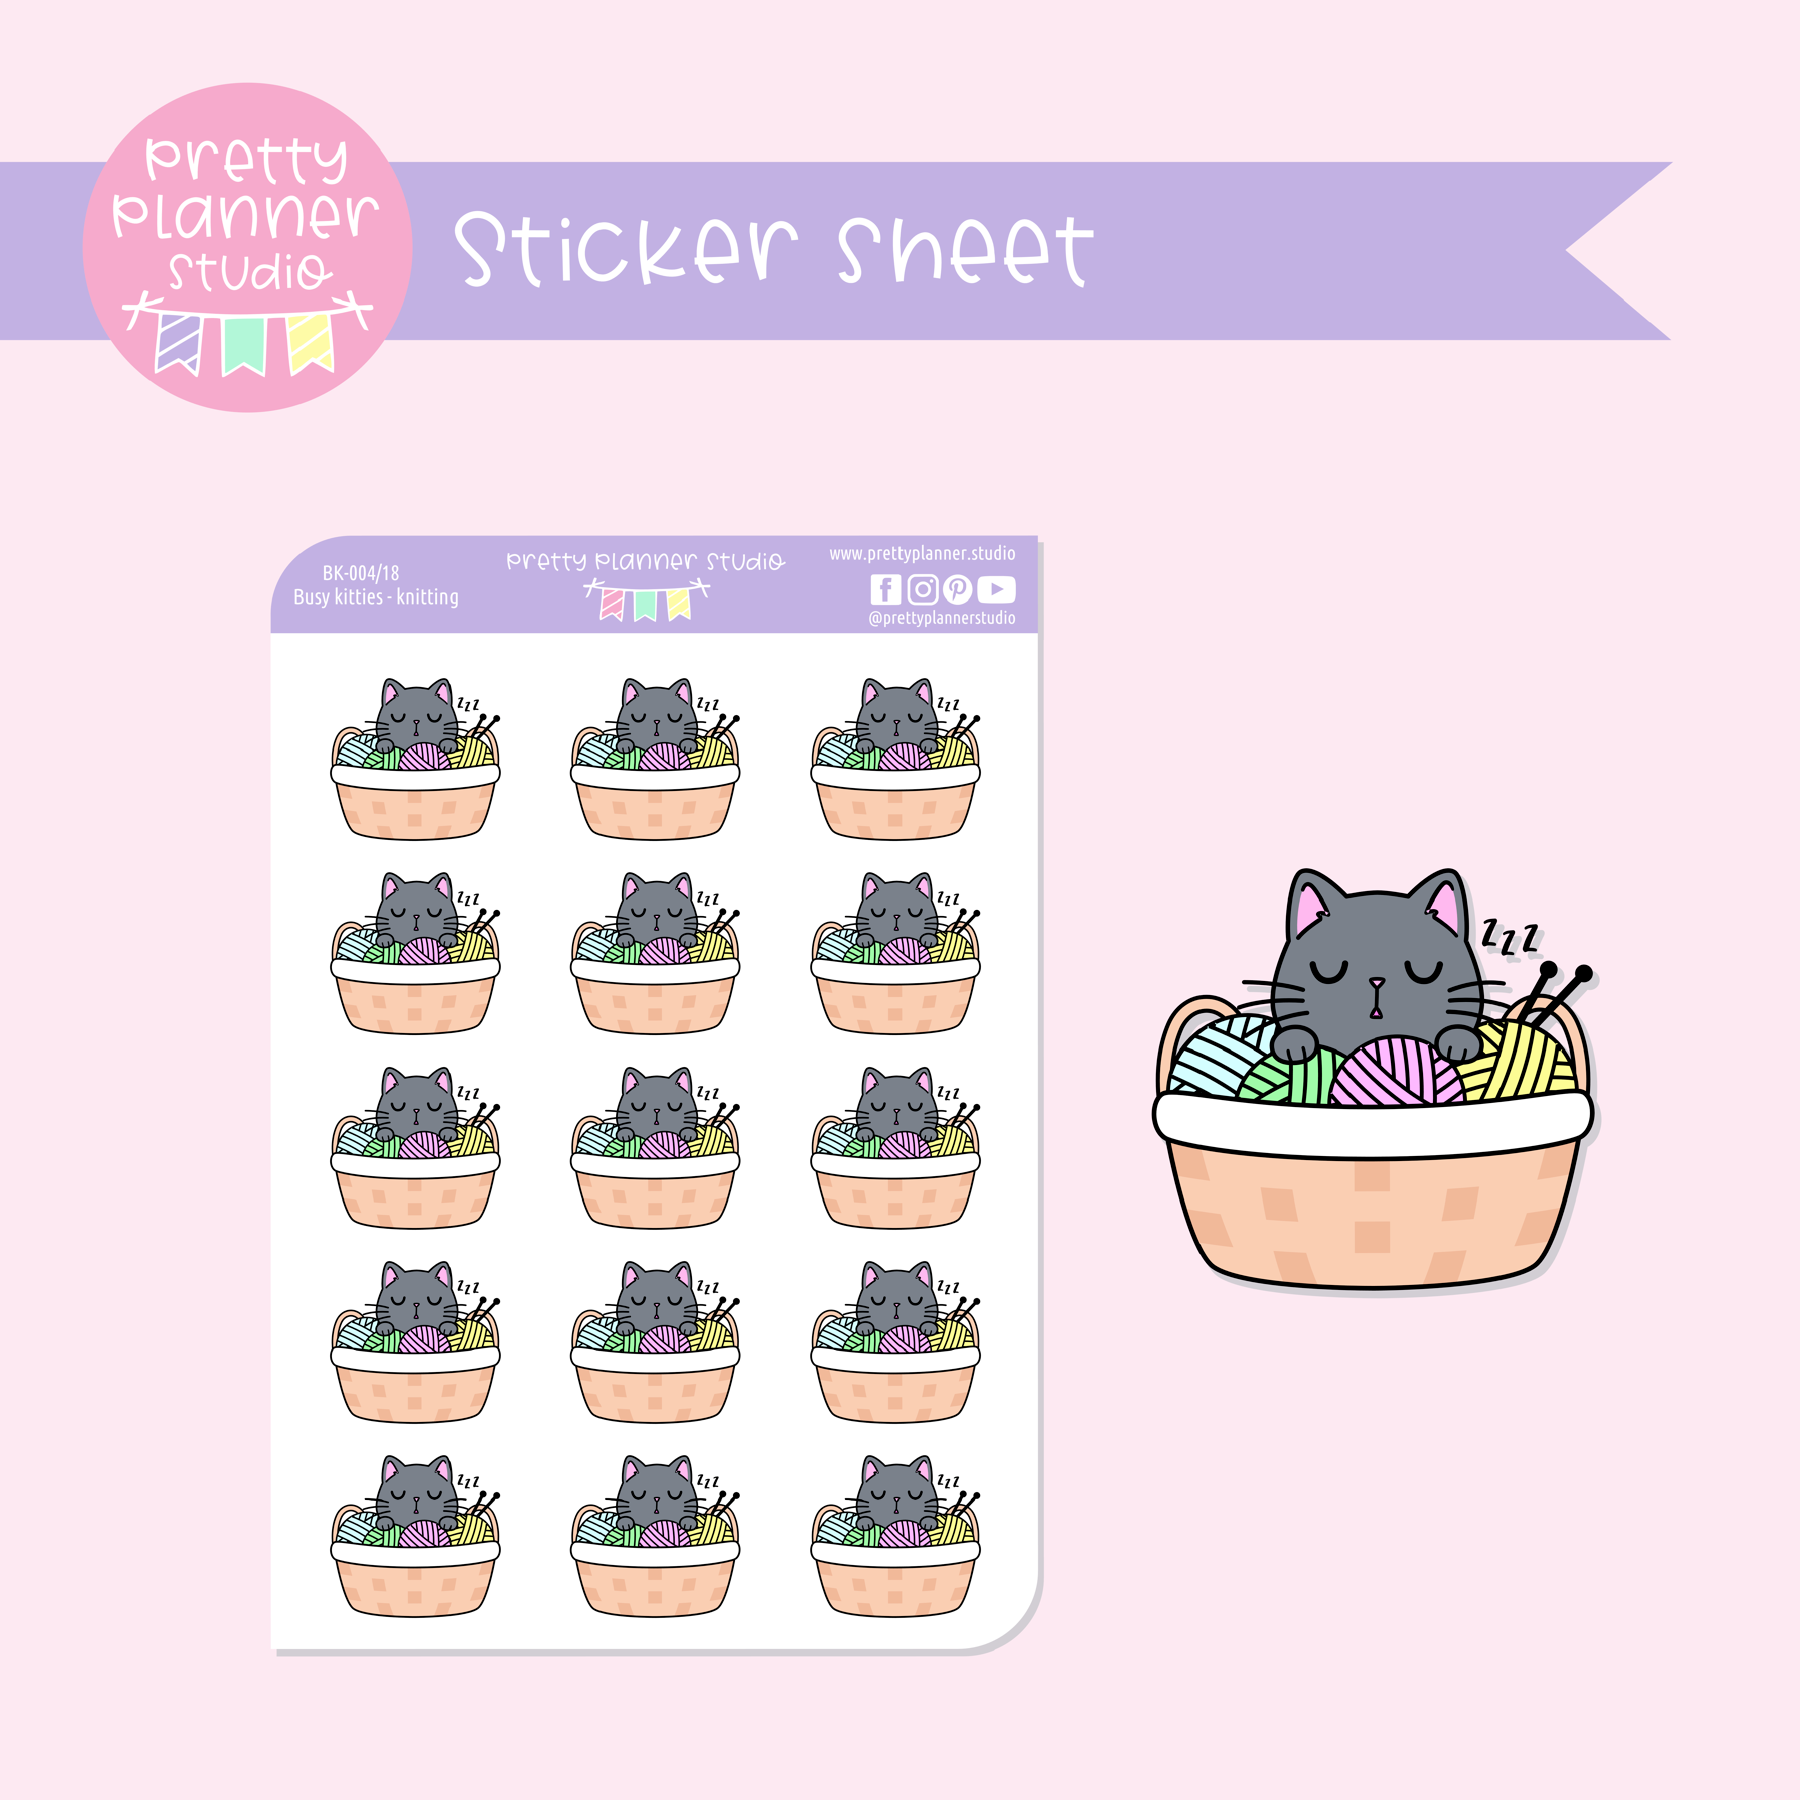 Busy kitties - knitting | sticker sheet | BK-004/18